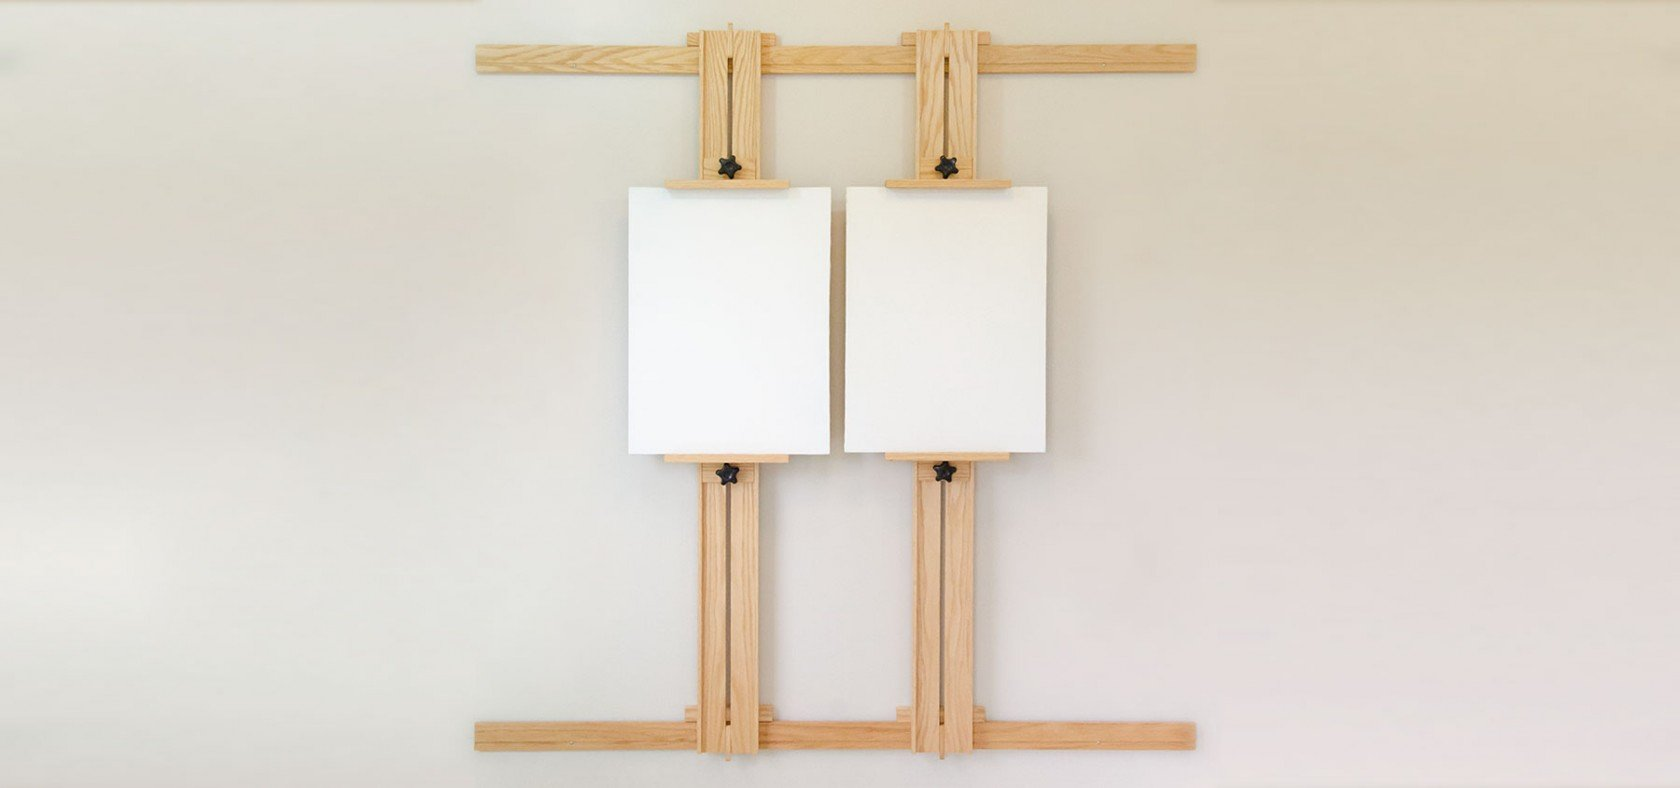 Showcase 66 Inch Wall Easel with Two Canvases